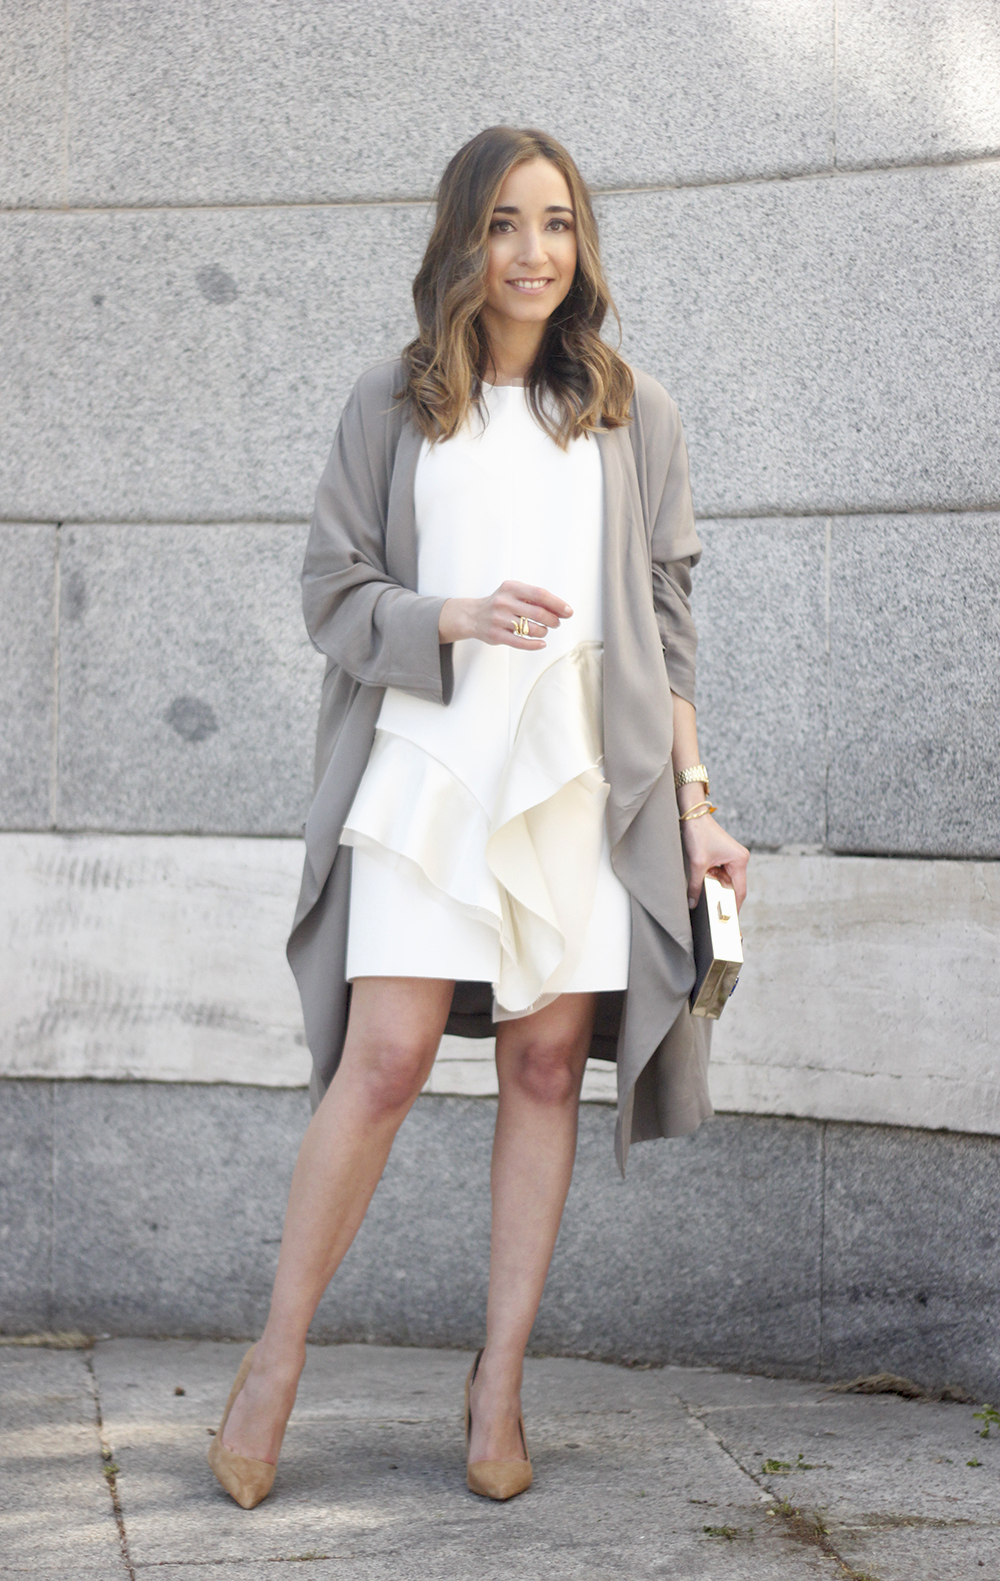 White dress with ruffles trench nude heels clutch accessories outfit style22